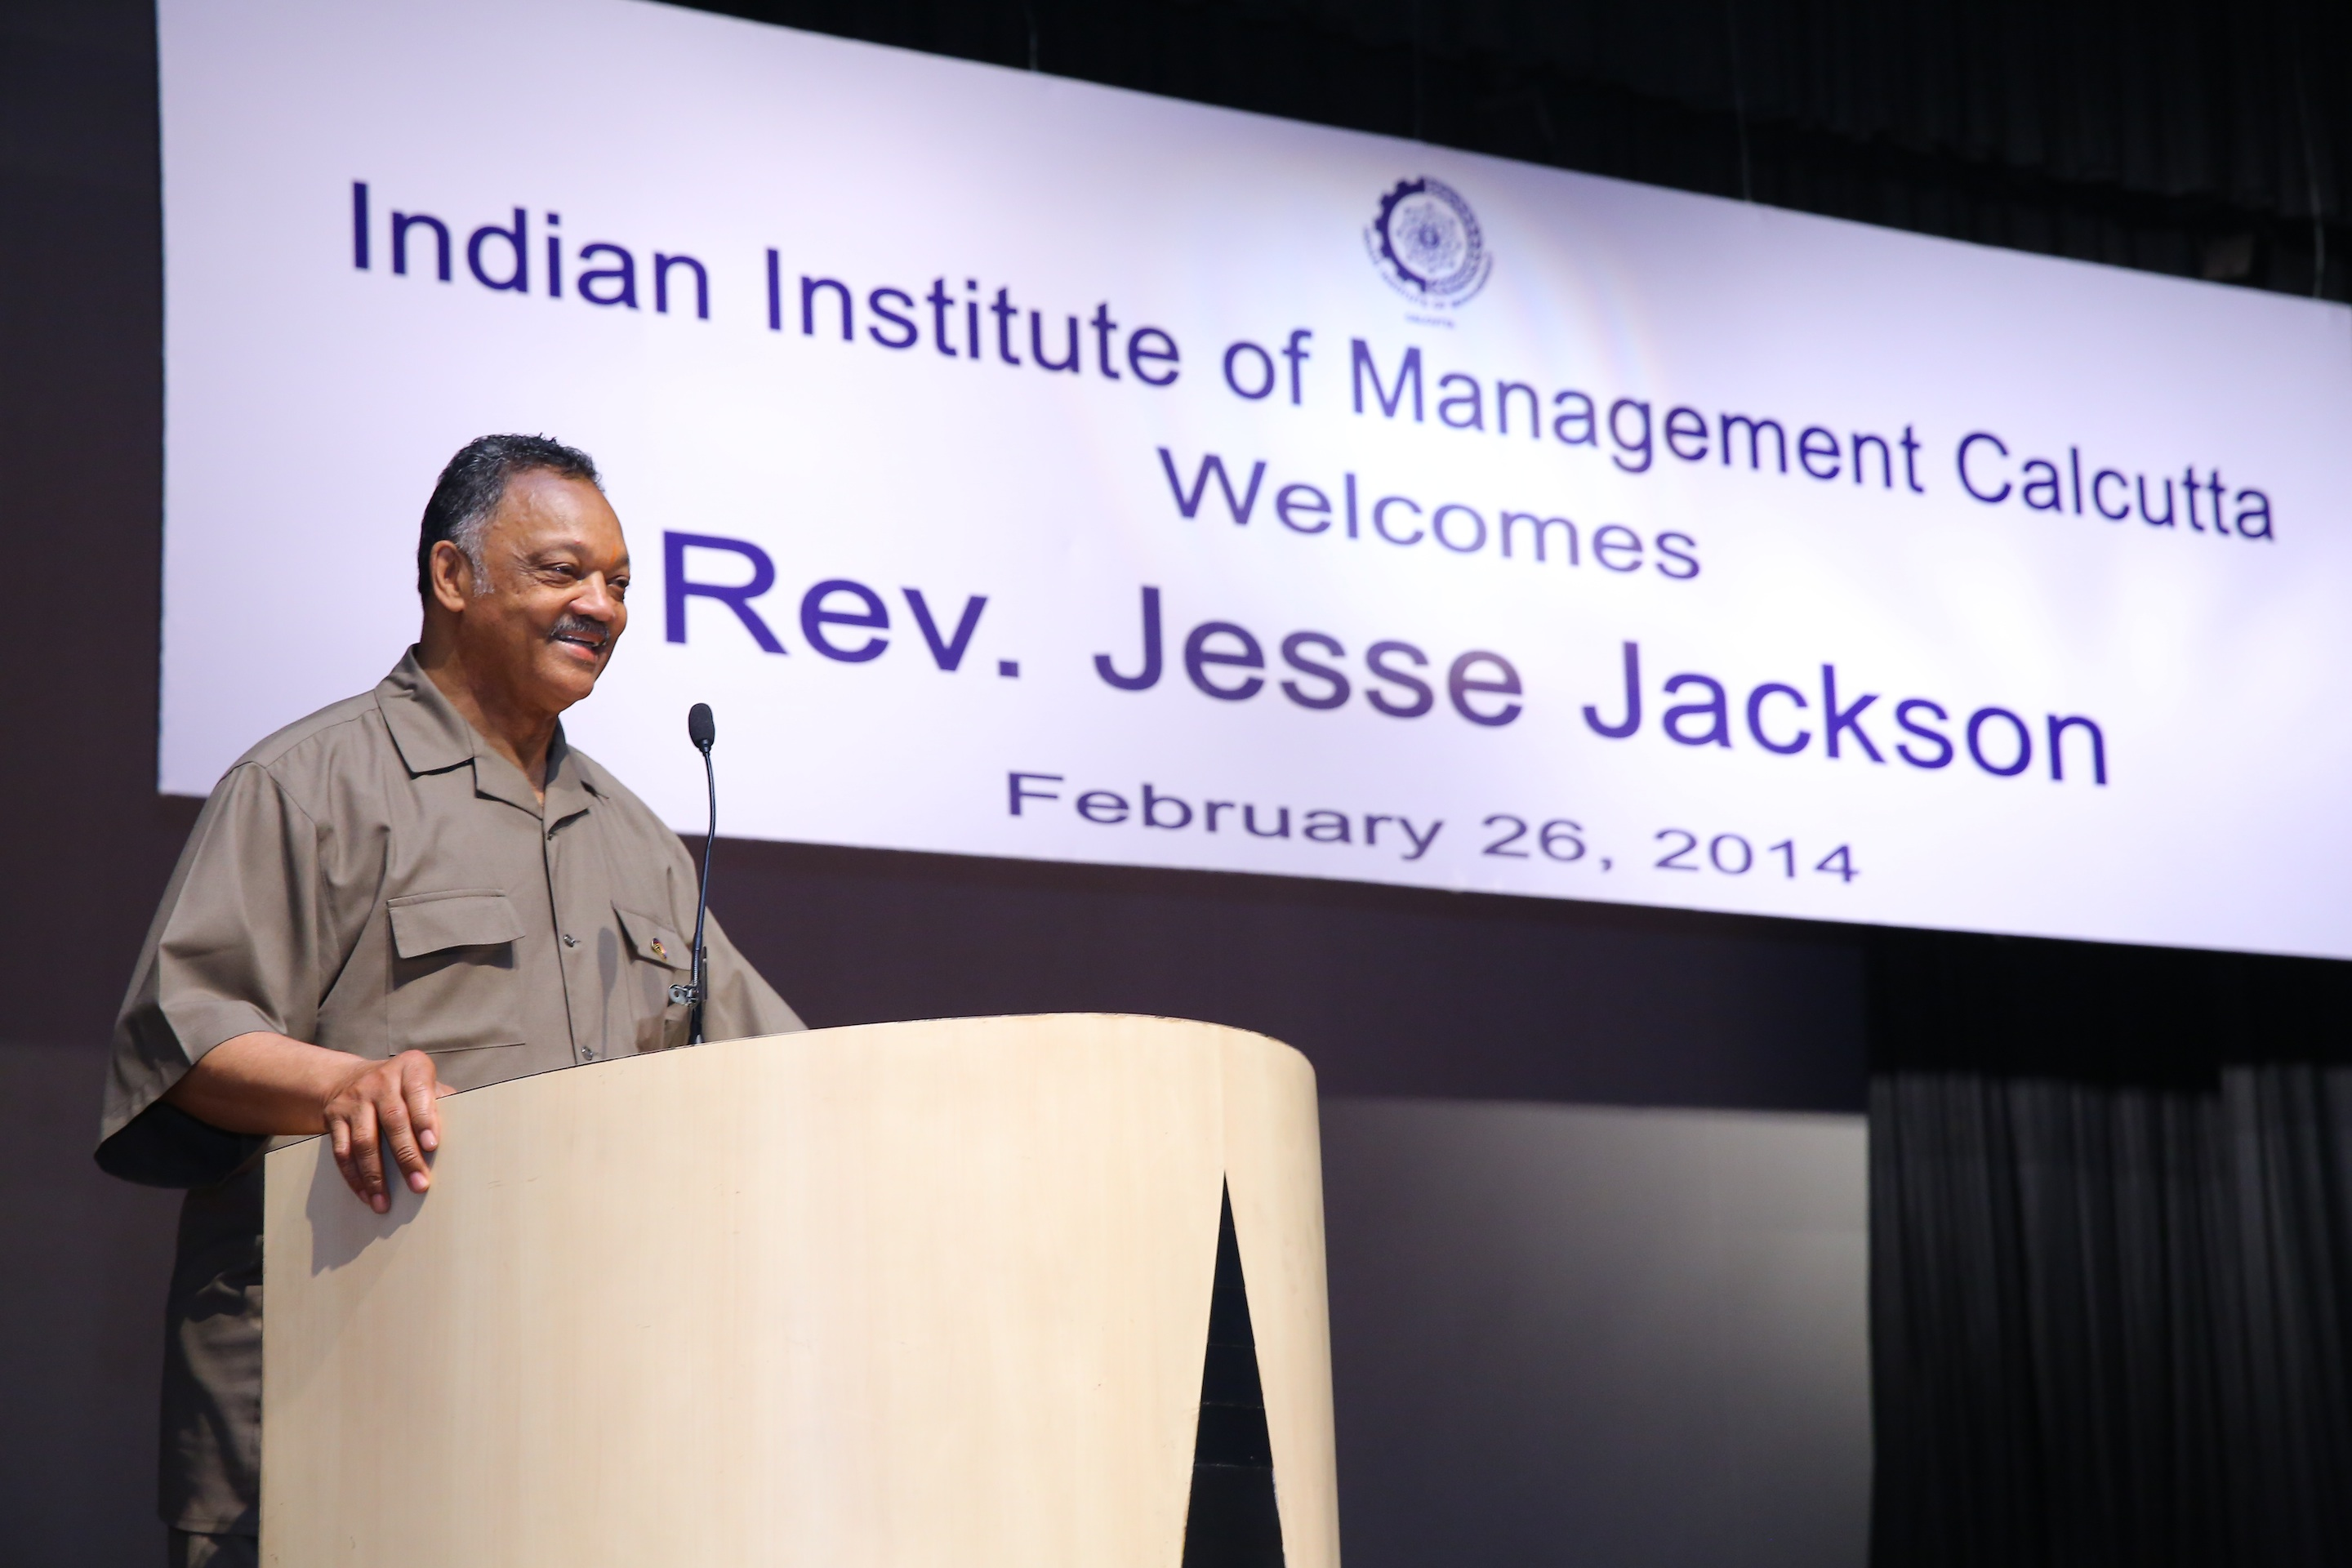 Caption: Jesse Jackson speaks at the IIM, Credit: IIM Calcutta